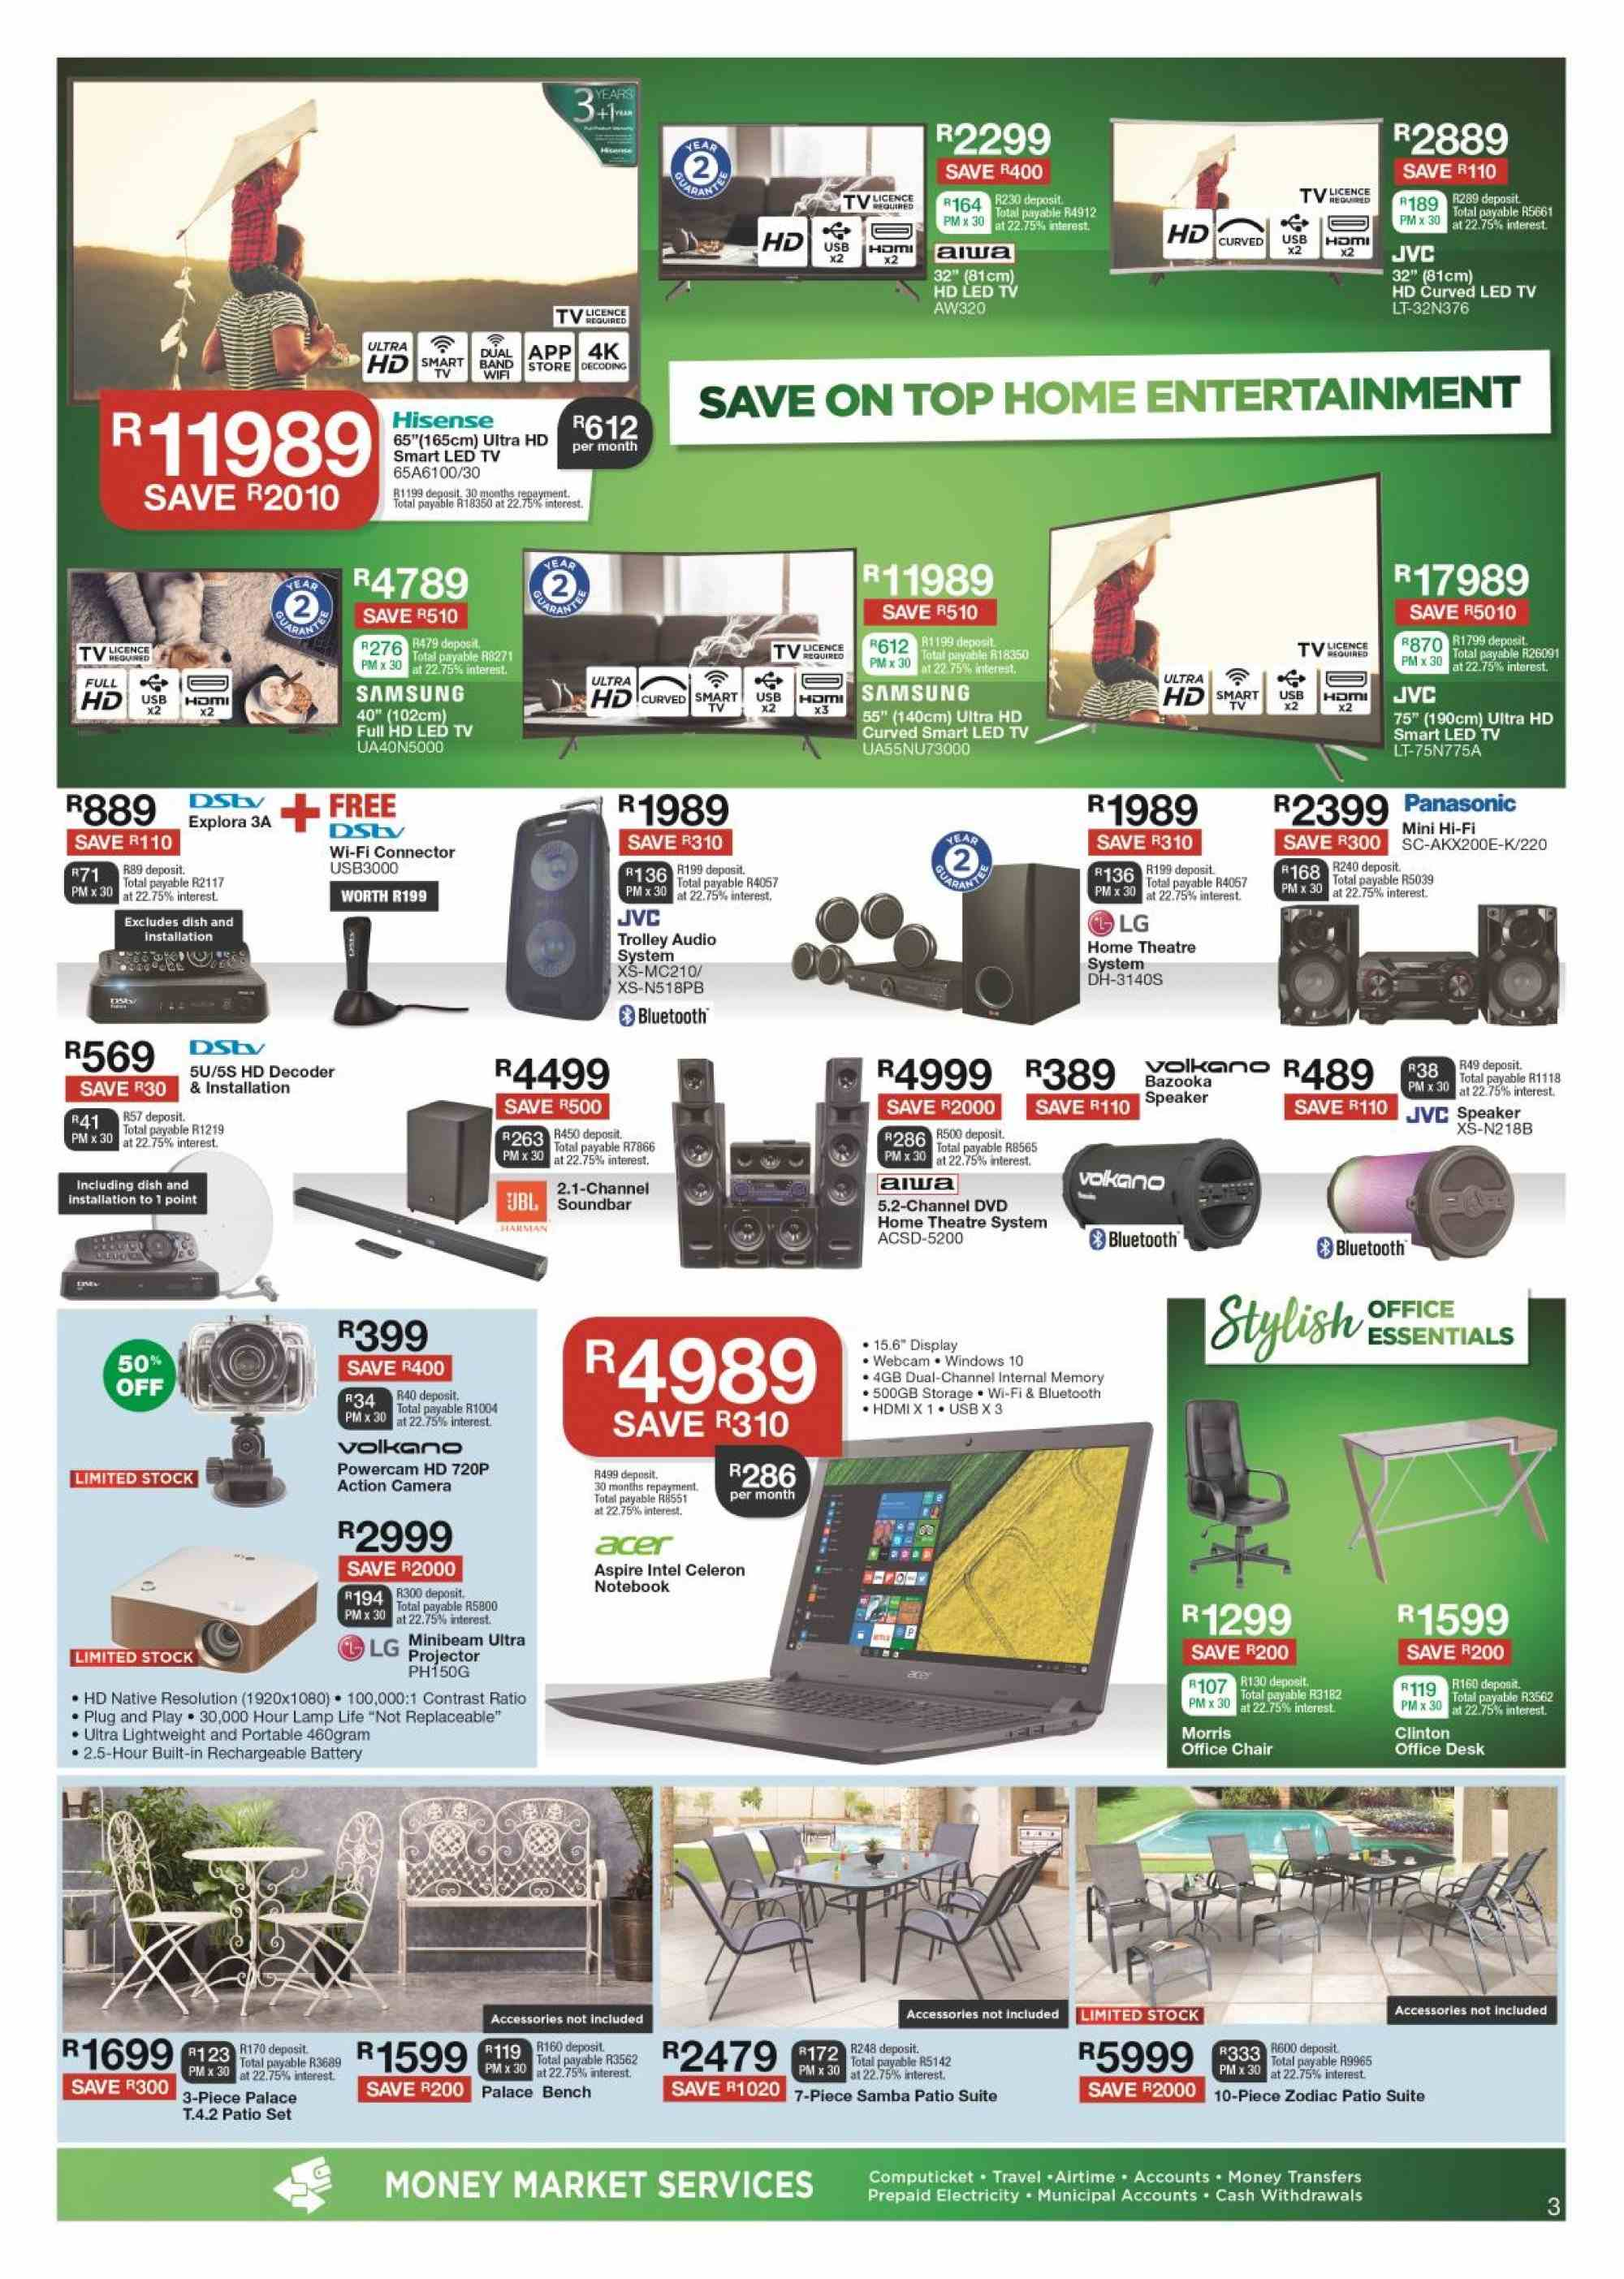 House & Home catalogue  - 02.26.2019 - 03.10.2019. Page 3.